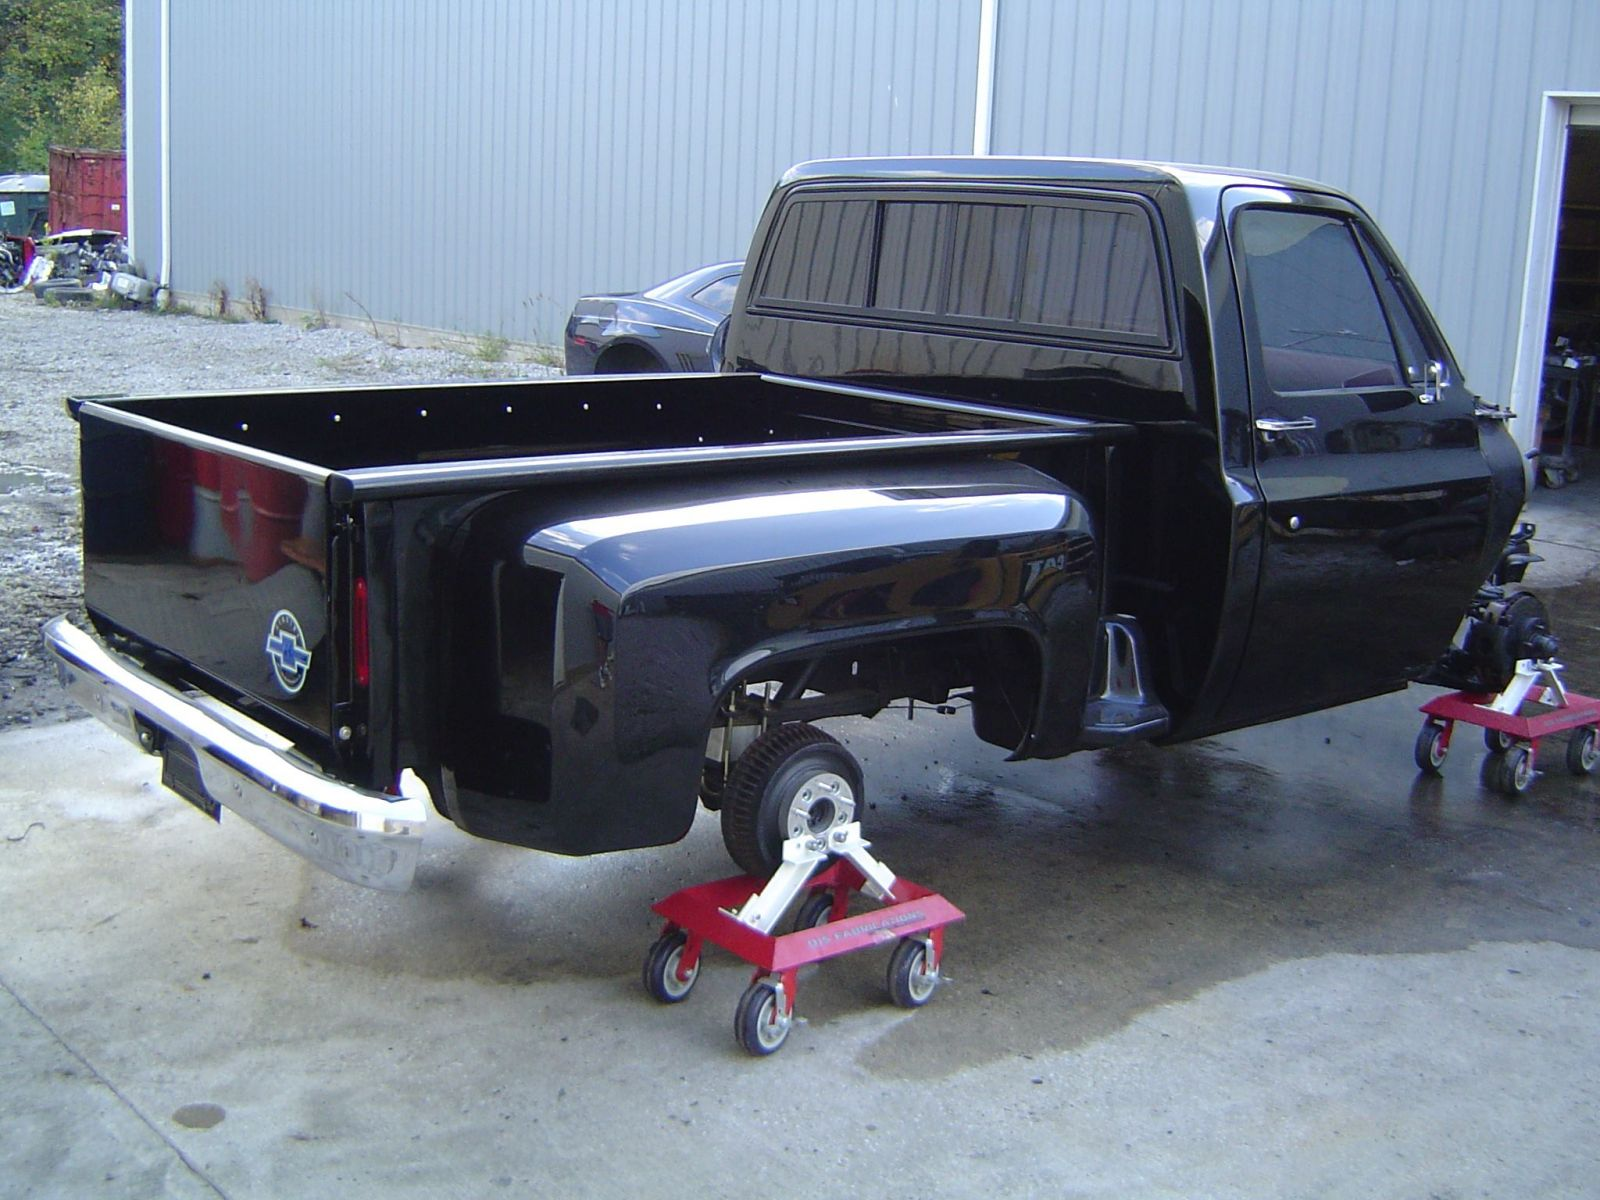 Cleveland Power And Performance >> 1978 Chevy C10 Restomod with LS1 Engine & Trans - Cleveland Power & Performance